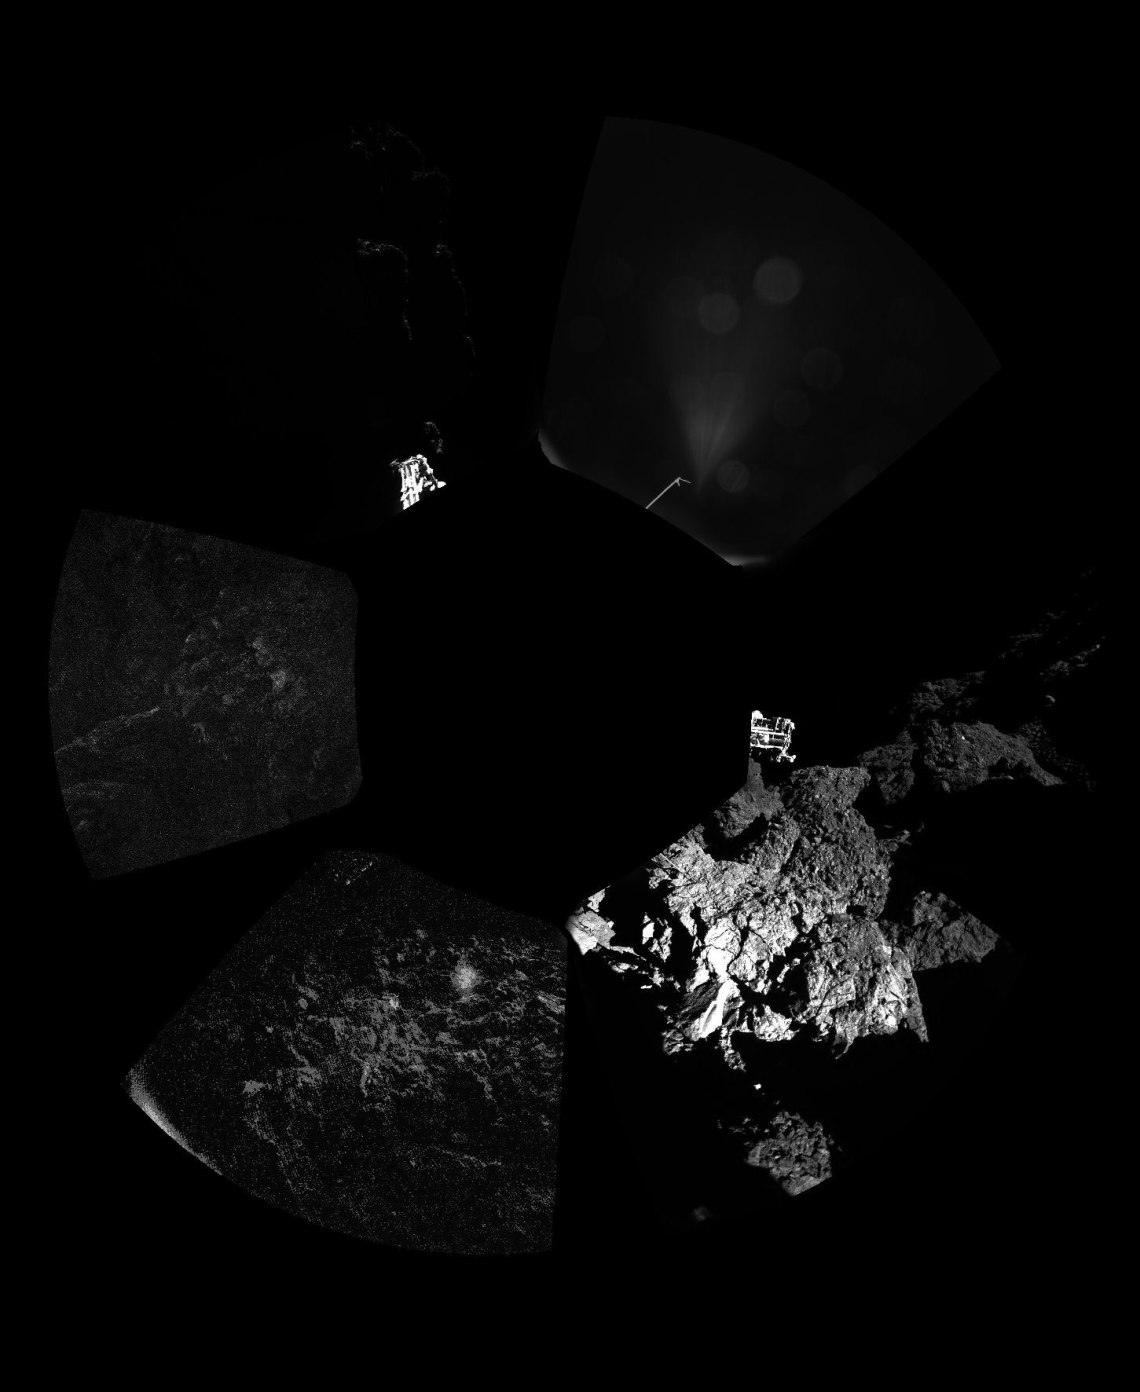 Rosetta's lander Philae has returned the first panoramic image (above) from the surface of a comet. The unprocessed view shows a 360º view around the point of final touchdown. The three feet of Philae's landing gear can be seen in some of the frames. Credit: ESA/Rosetta/Philae/CIVA